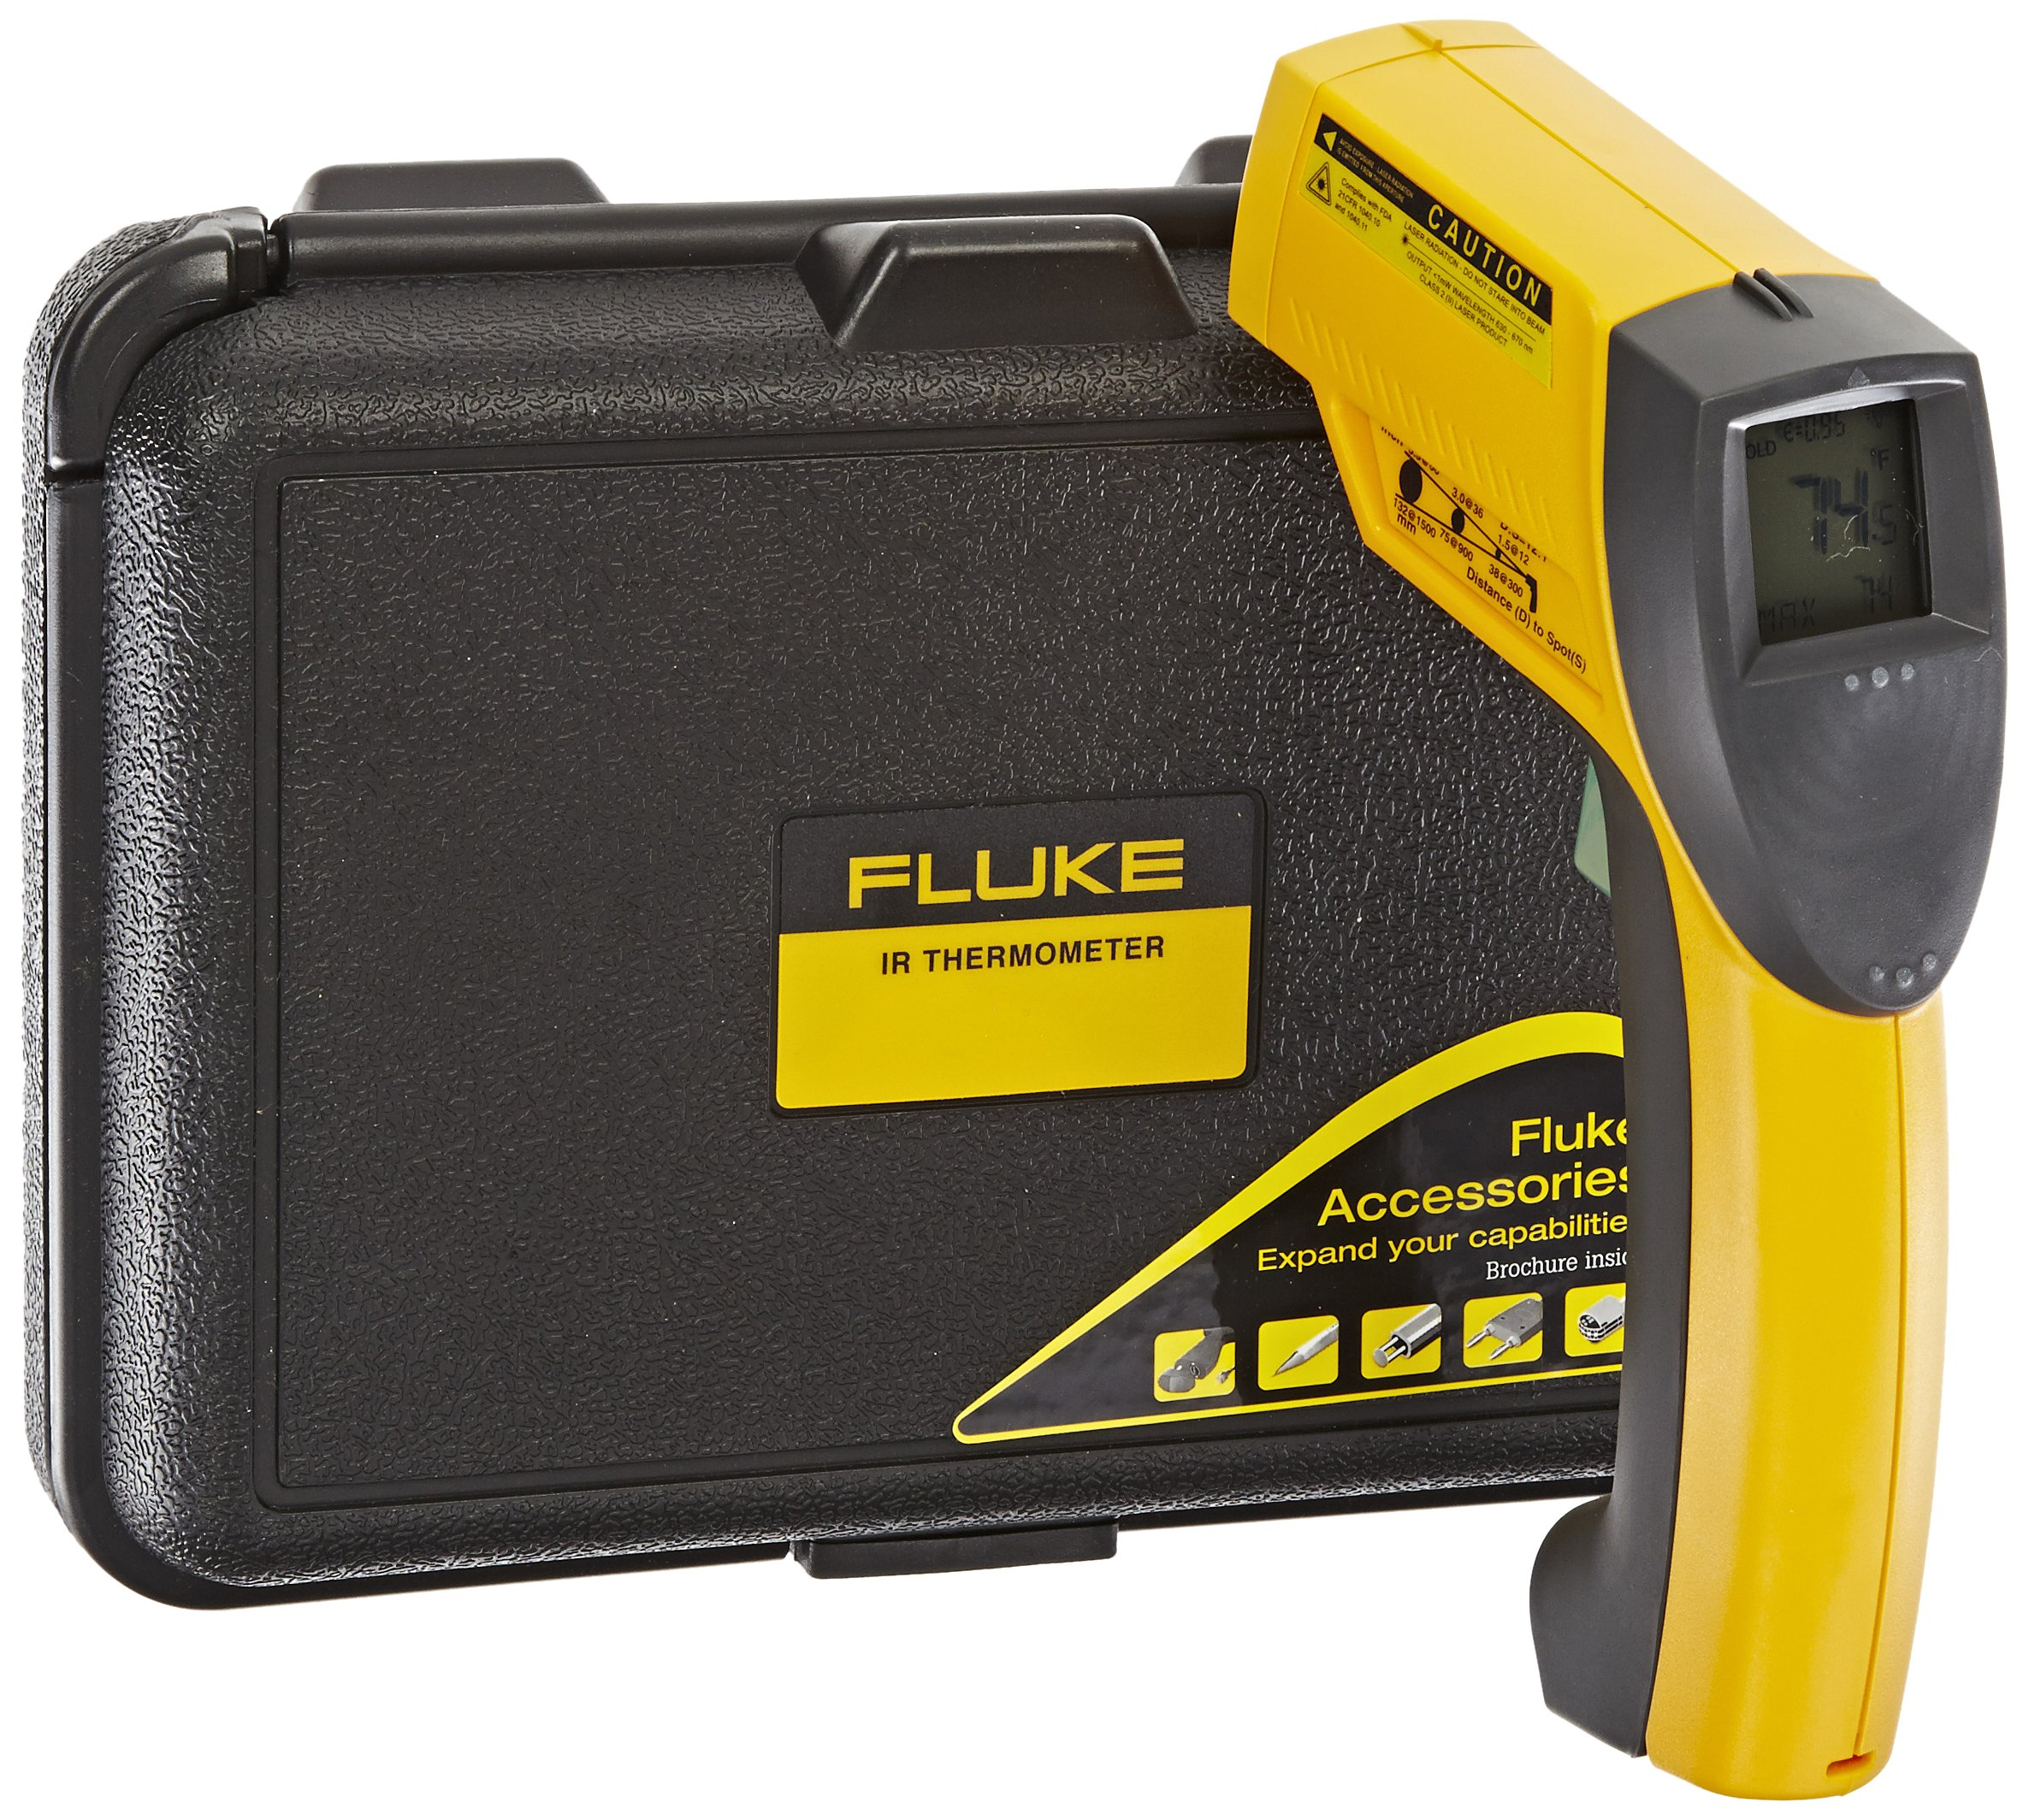 Fluke 63 Handheld Infrared Thermometer, 9V Alkaline Battery, -25 to +999 Degree F Range by Fluke